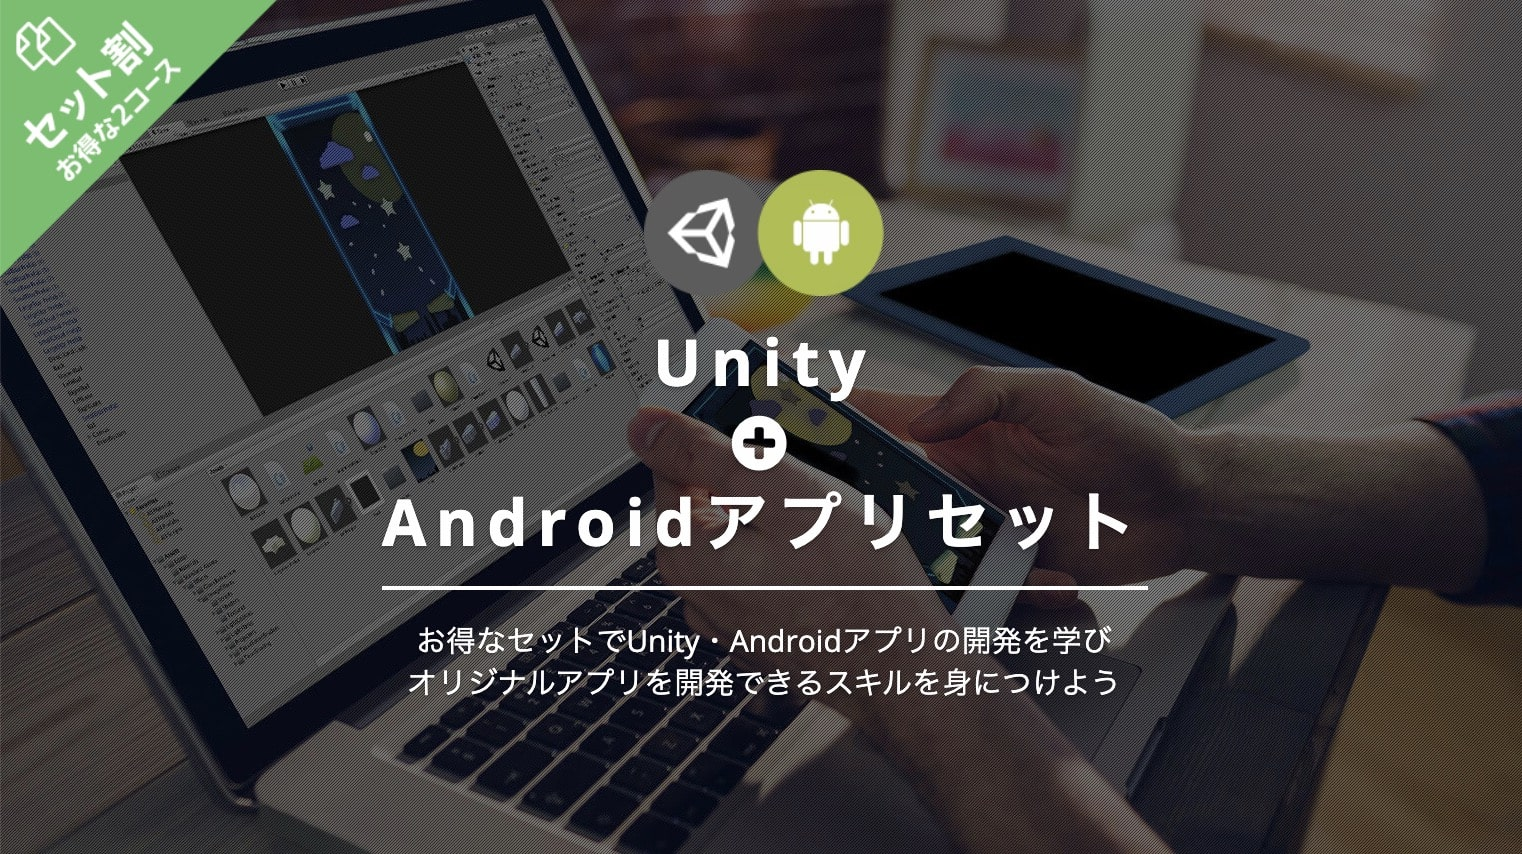 Unity+Androidアプリセットの料金|TechAcademy(テックアカデミー)2セット